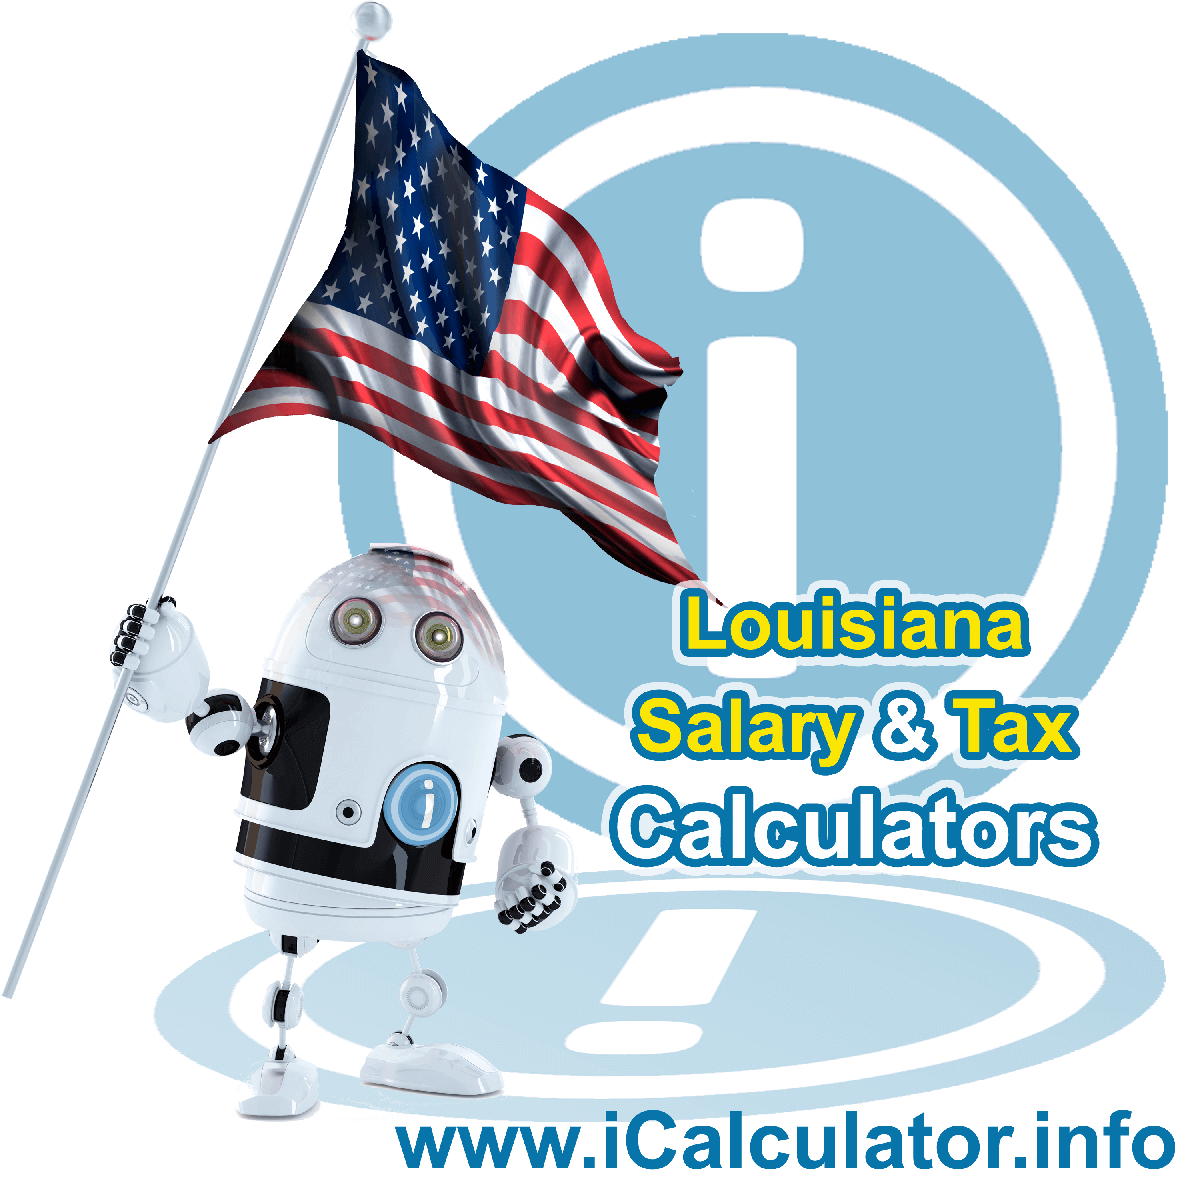 Louisiana Salary Calculator 2020 | iCalculator | The Louisiana Salary Calculator allows you to quickly calculate your salary after tax including Louisiana State Tax, Federal State Tax, Medicare Deductions, Social Security, Capital Gains and other income tax and salary deductions complete with supporting Louisiana state tax tables